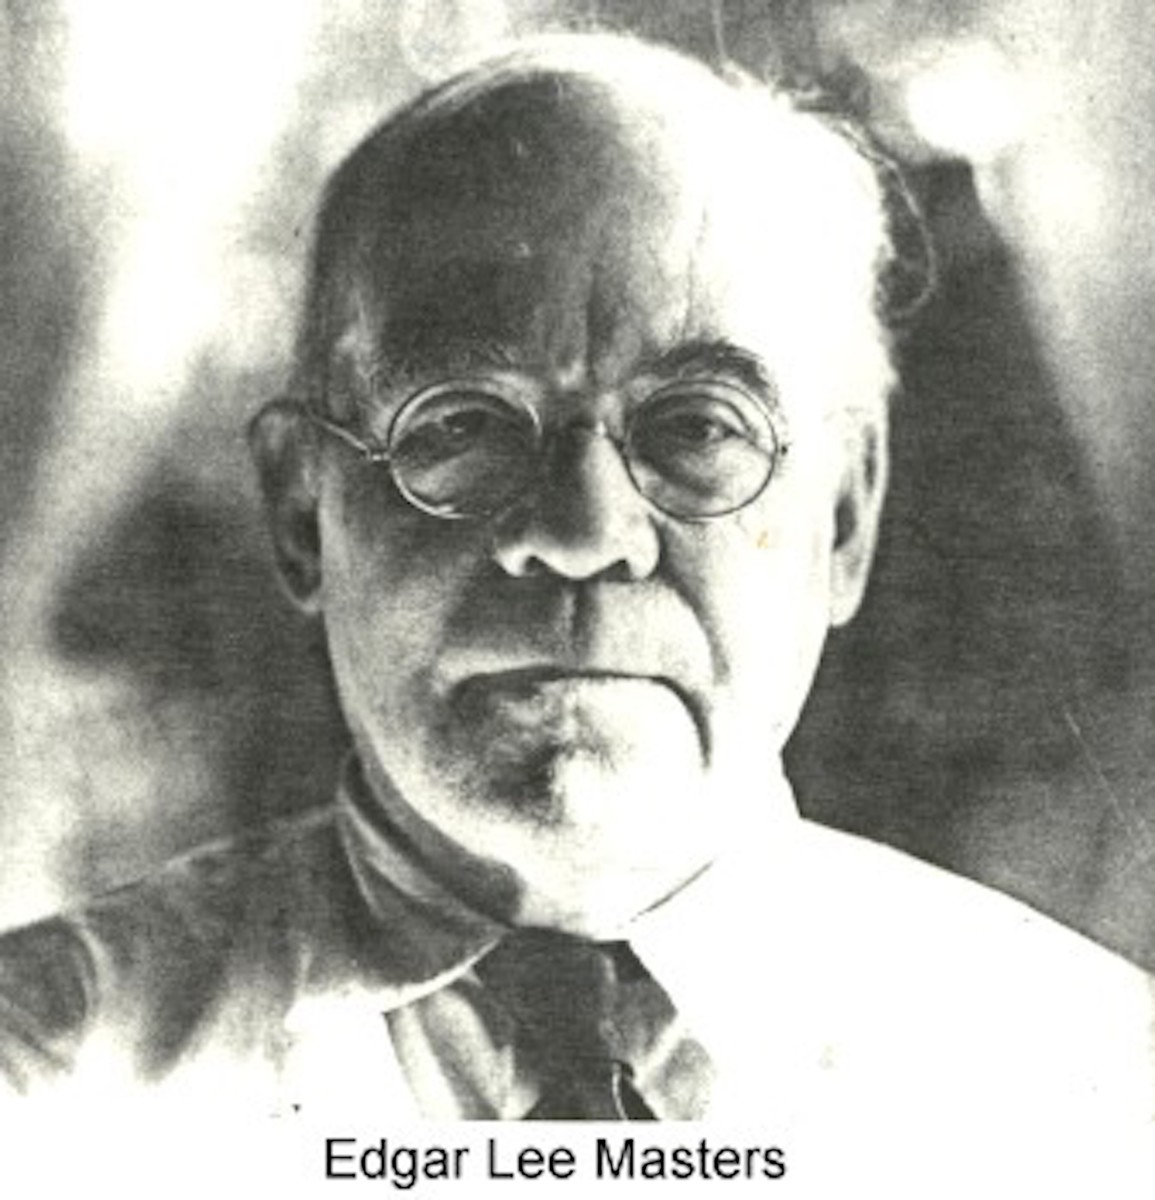 092-edgar-lee-masters-rev-abner-peet